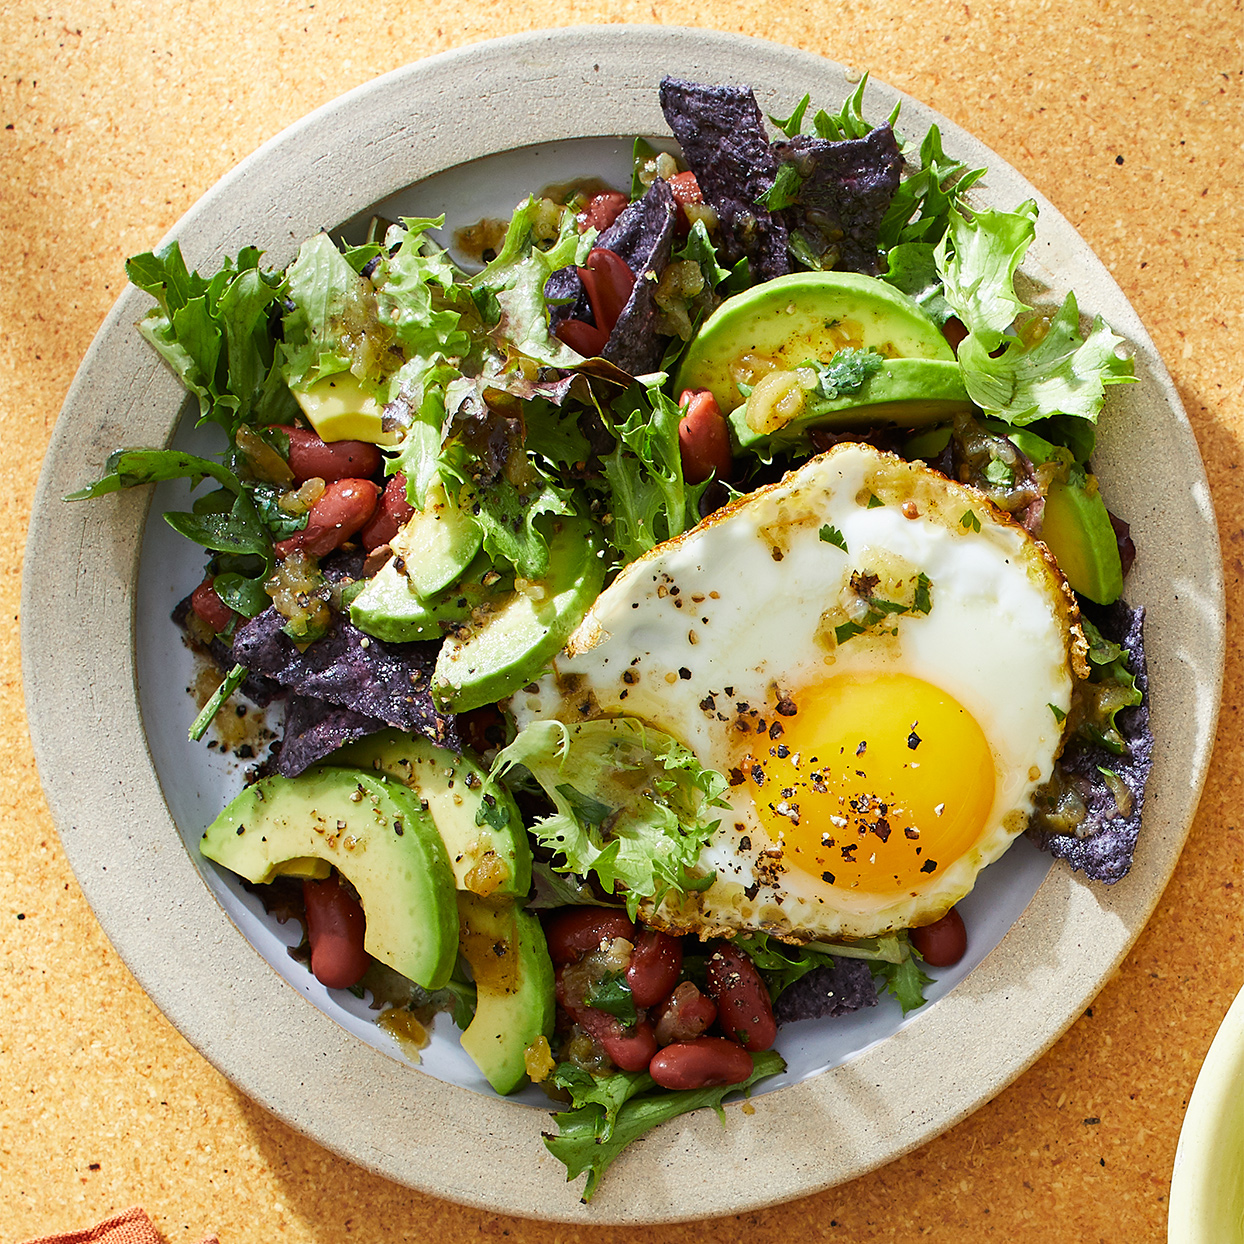 Salad for breakfast? Don't knock it until you've tried it. We love how this meal gives you 3 whole cups of vegetables to start your day. Source: Diabetic Living Magazine, Fall 2020